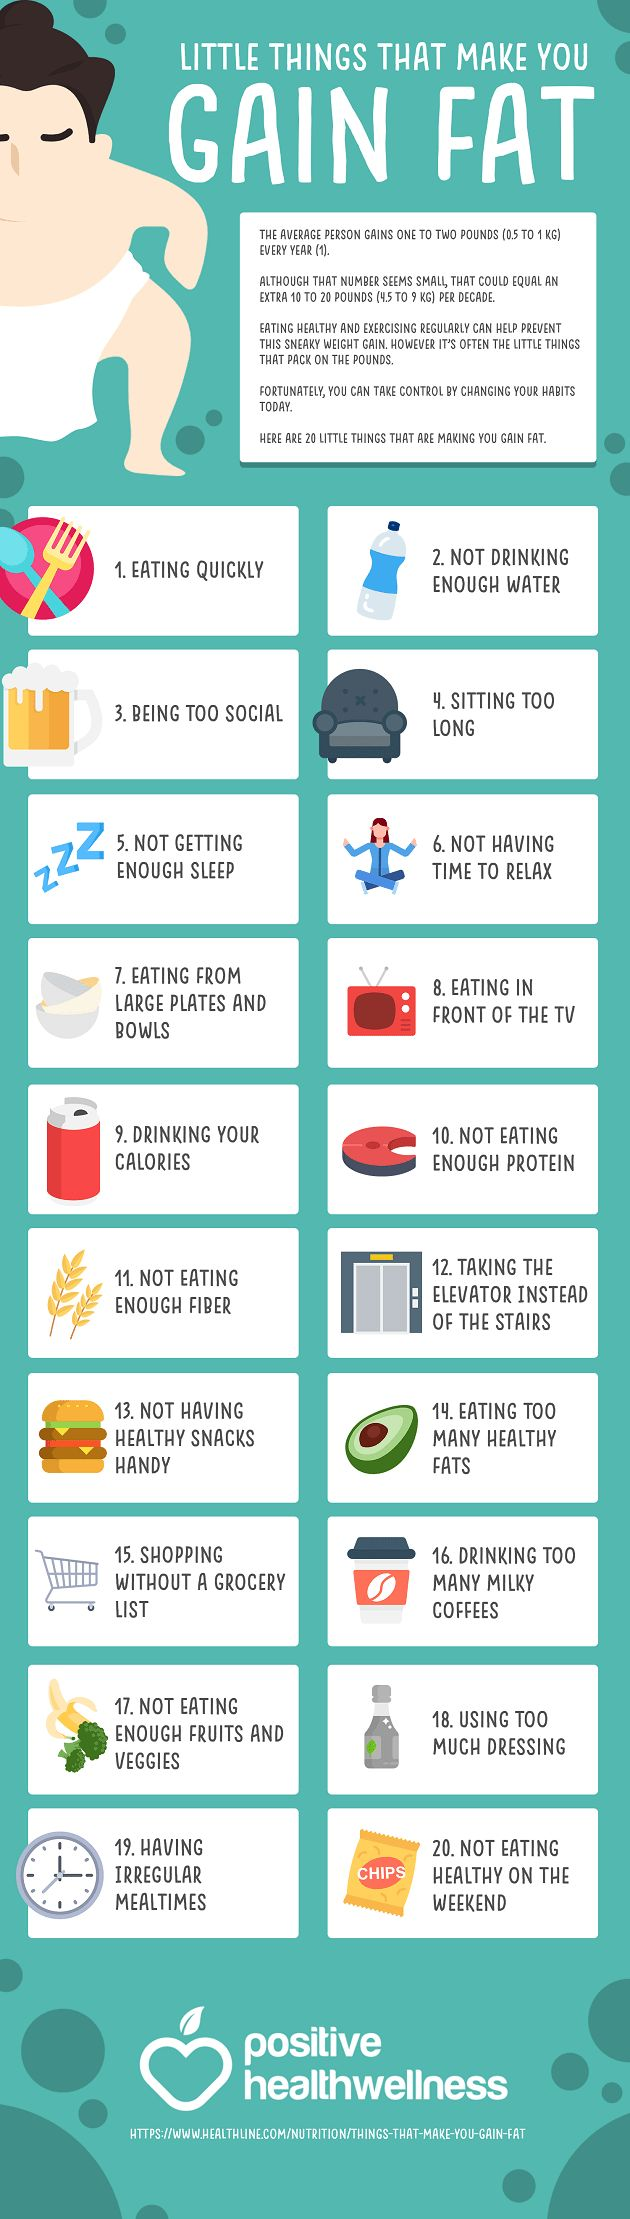 20 Little Things That Make You Gain Fat – Positive Health Wellness Infographic